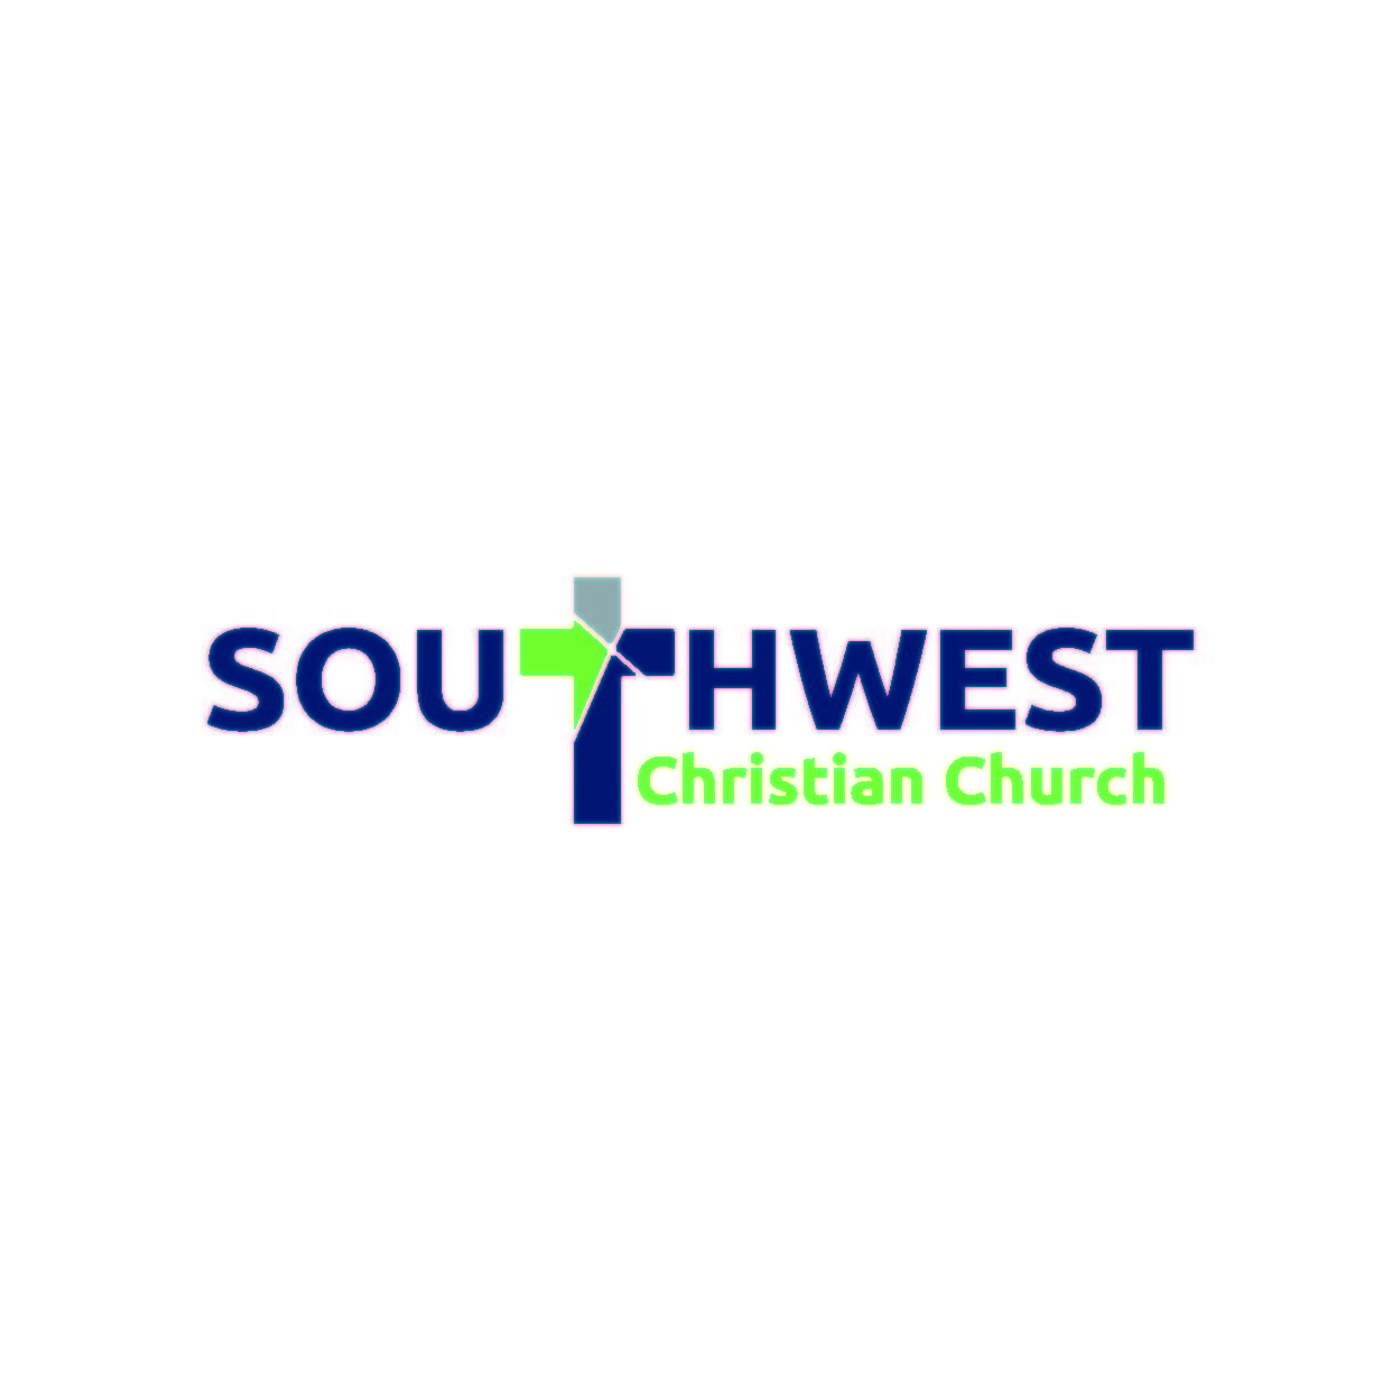 Southwest Christian Church